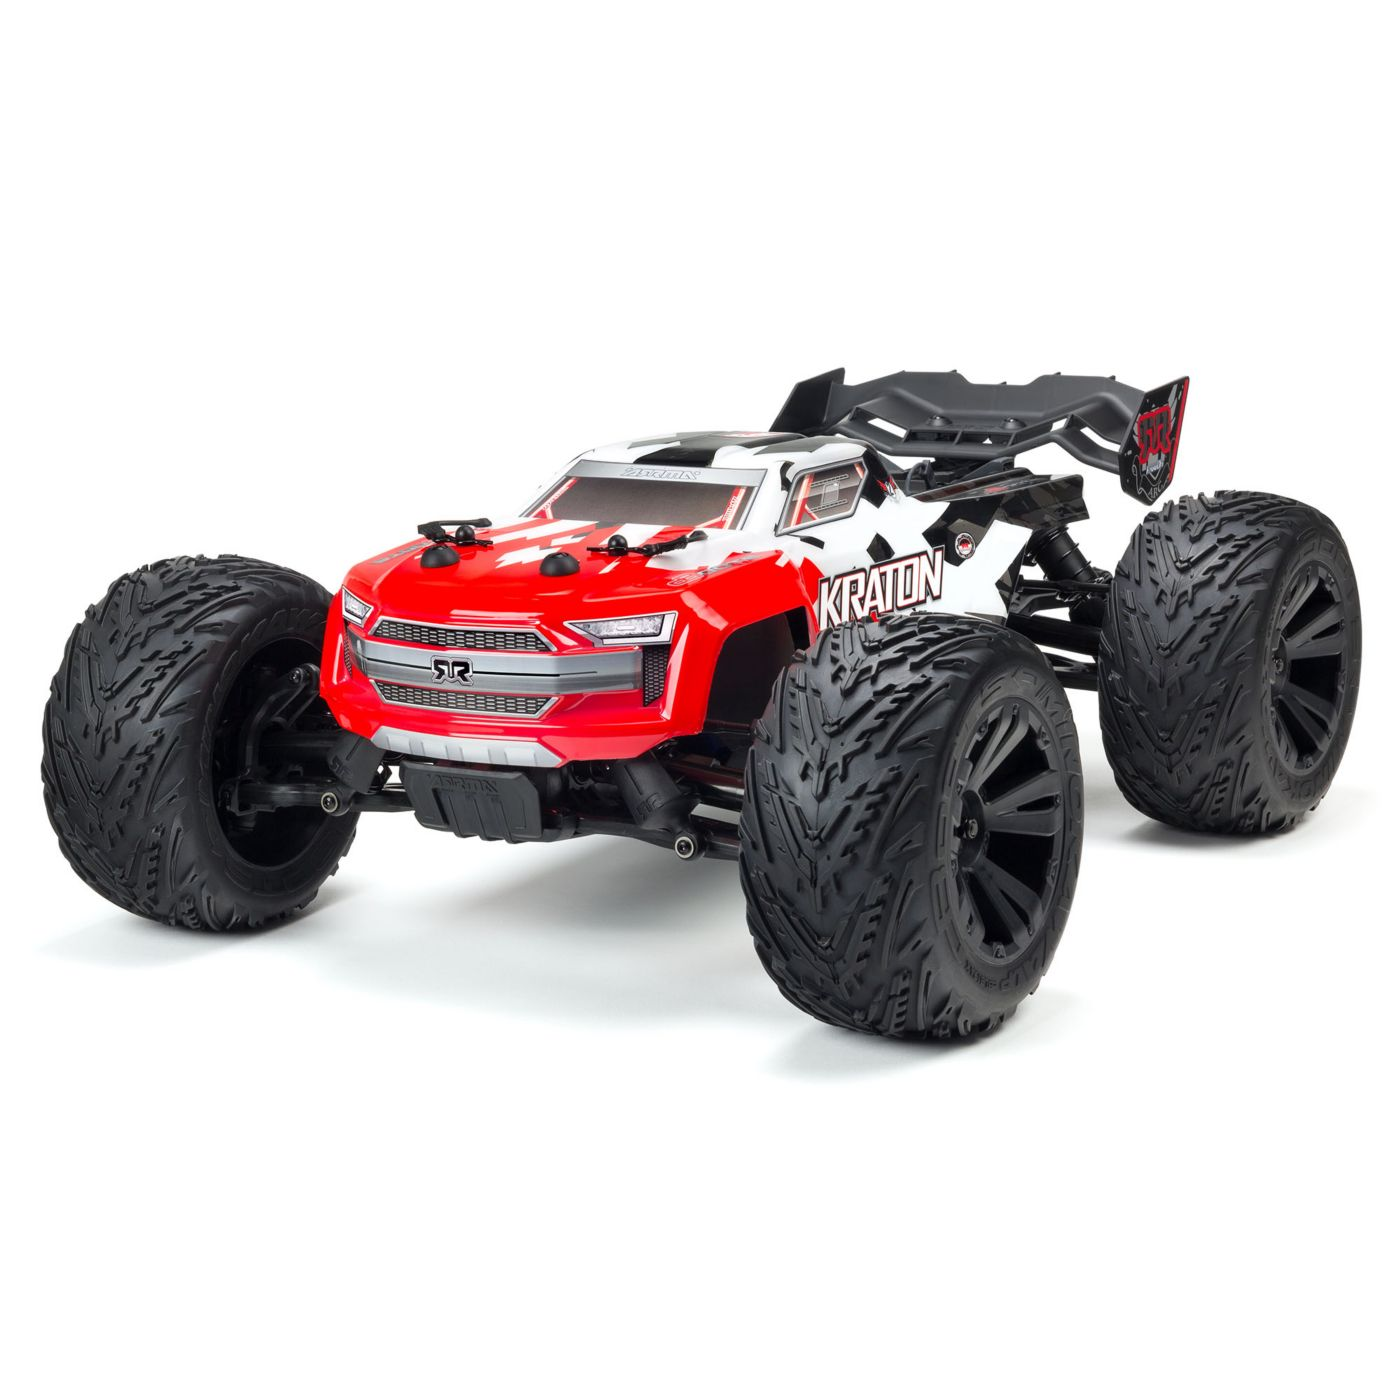 ARRMA 1/10 KRATON 4x4 4S BLX Brushless Monster Truck with Spektrum RTR, Red